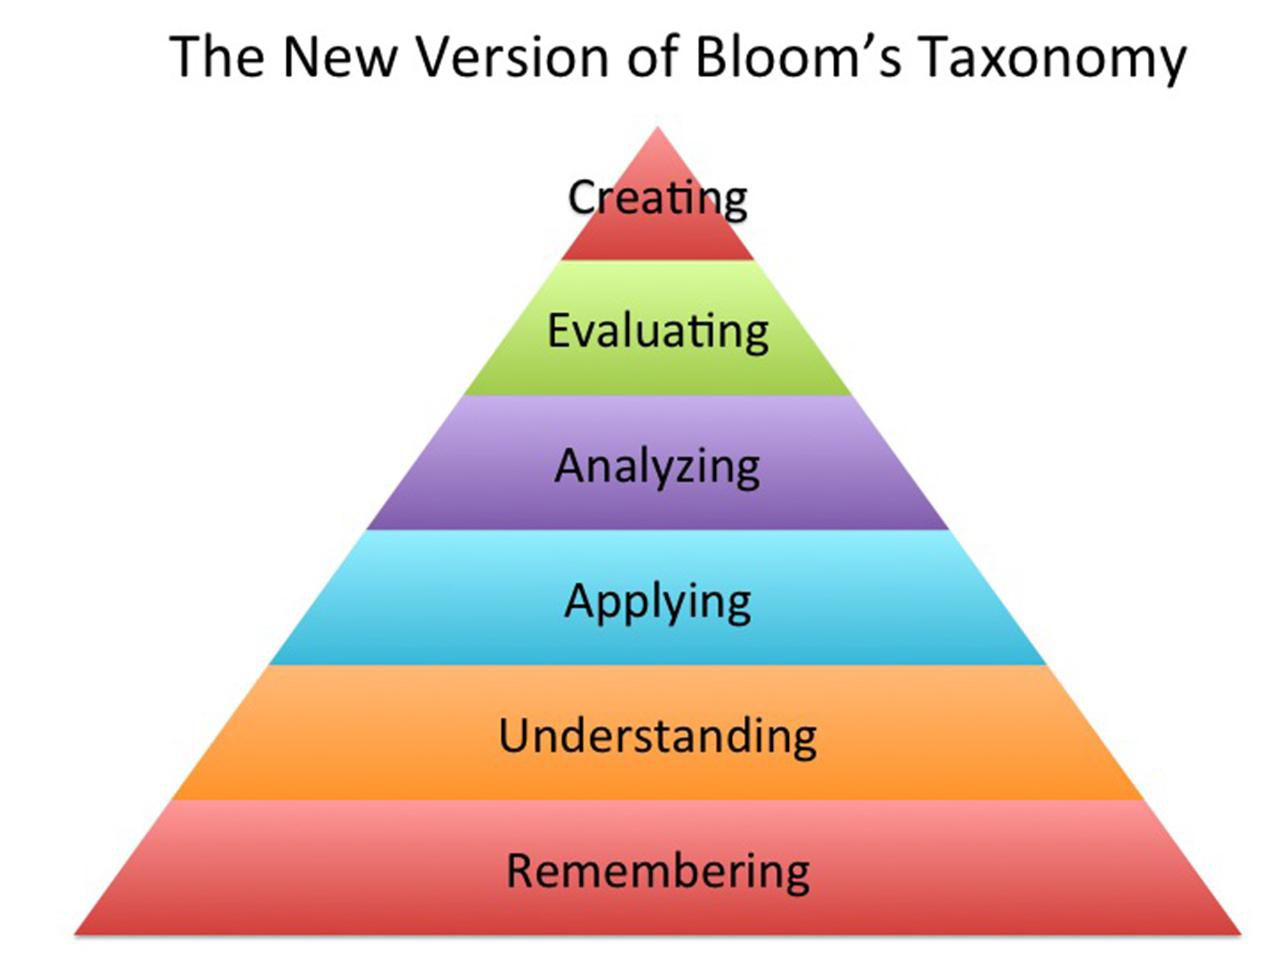 Using Blooms Taxonomy Through The Learning Process How To Draw Up A Hierarchical Tree Diagram For Taxonomic